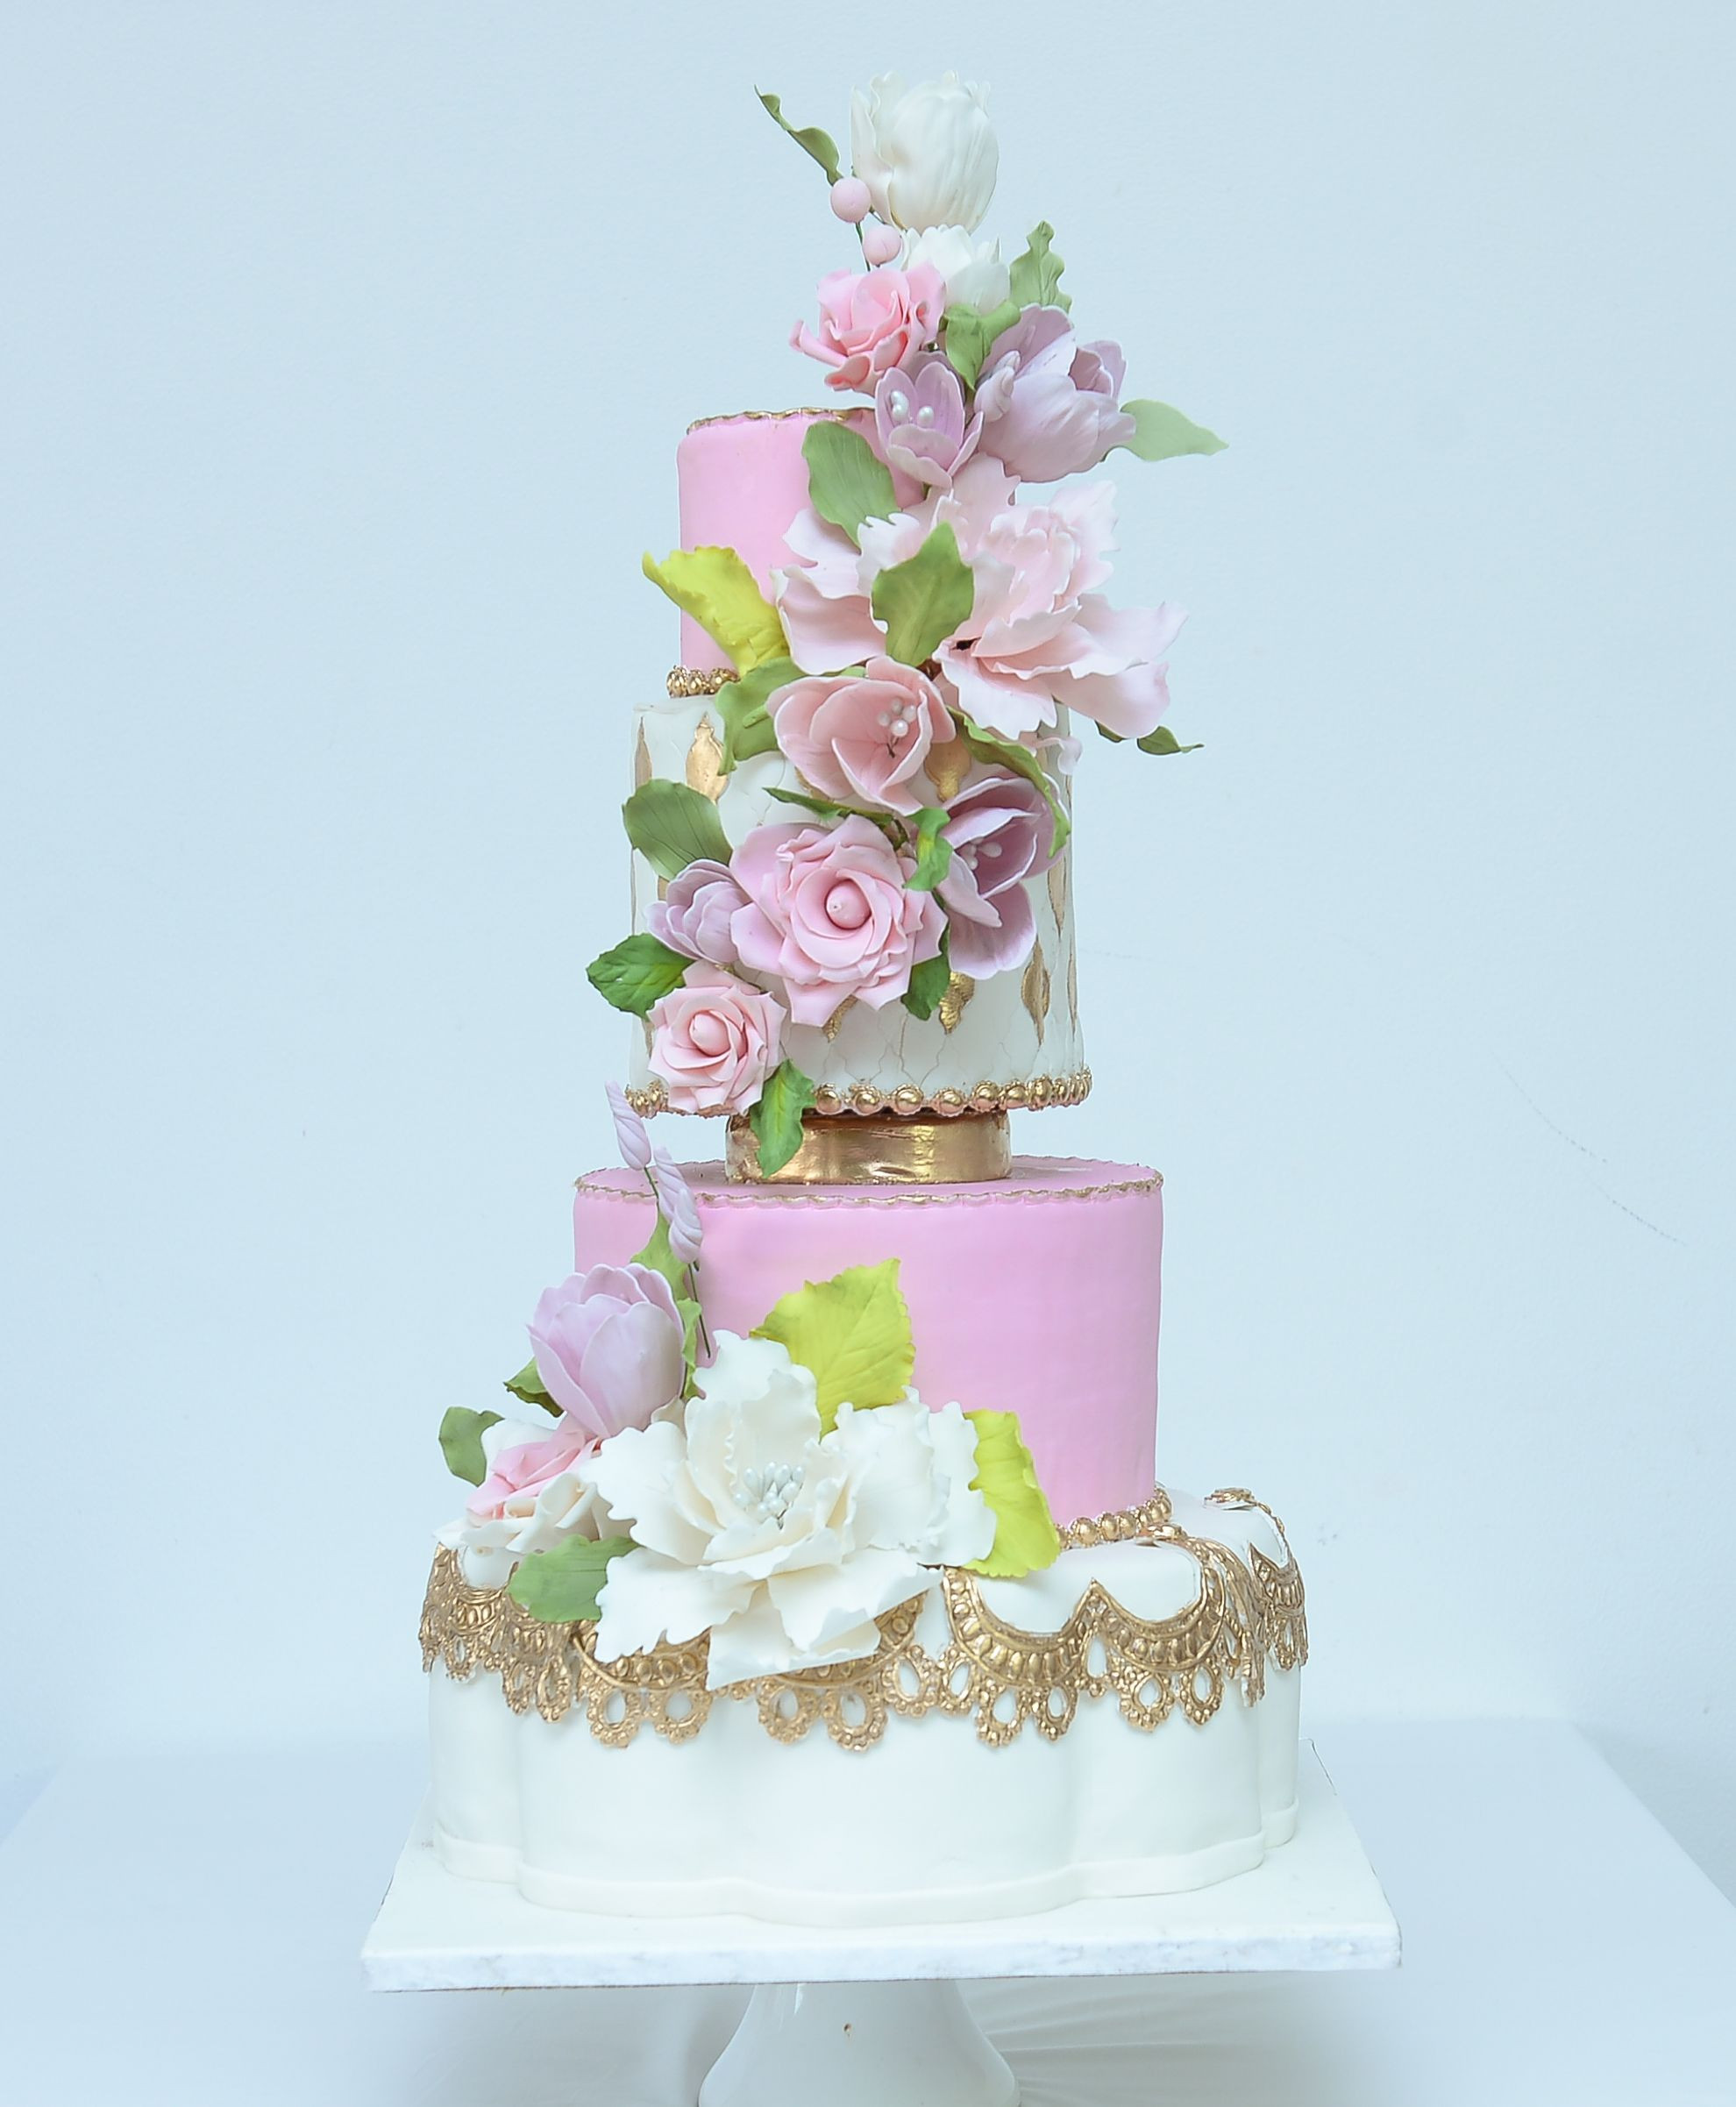 British Royal Wedding Cakes: Royal Wedding Cake Royal Pink And White Wedding Cake With